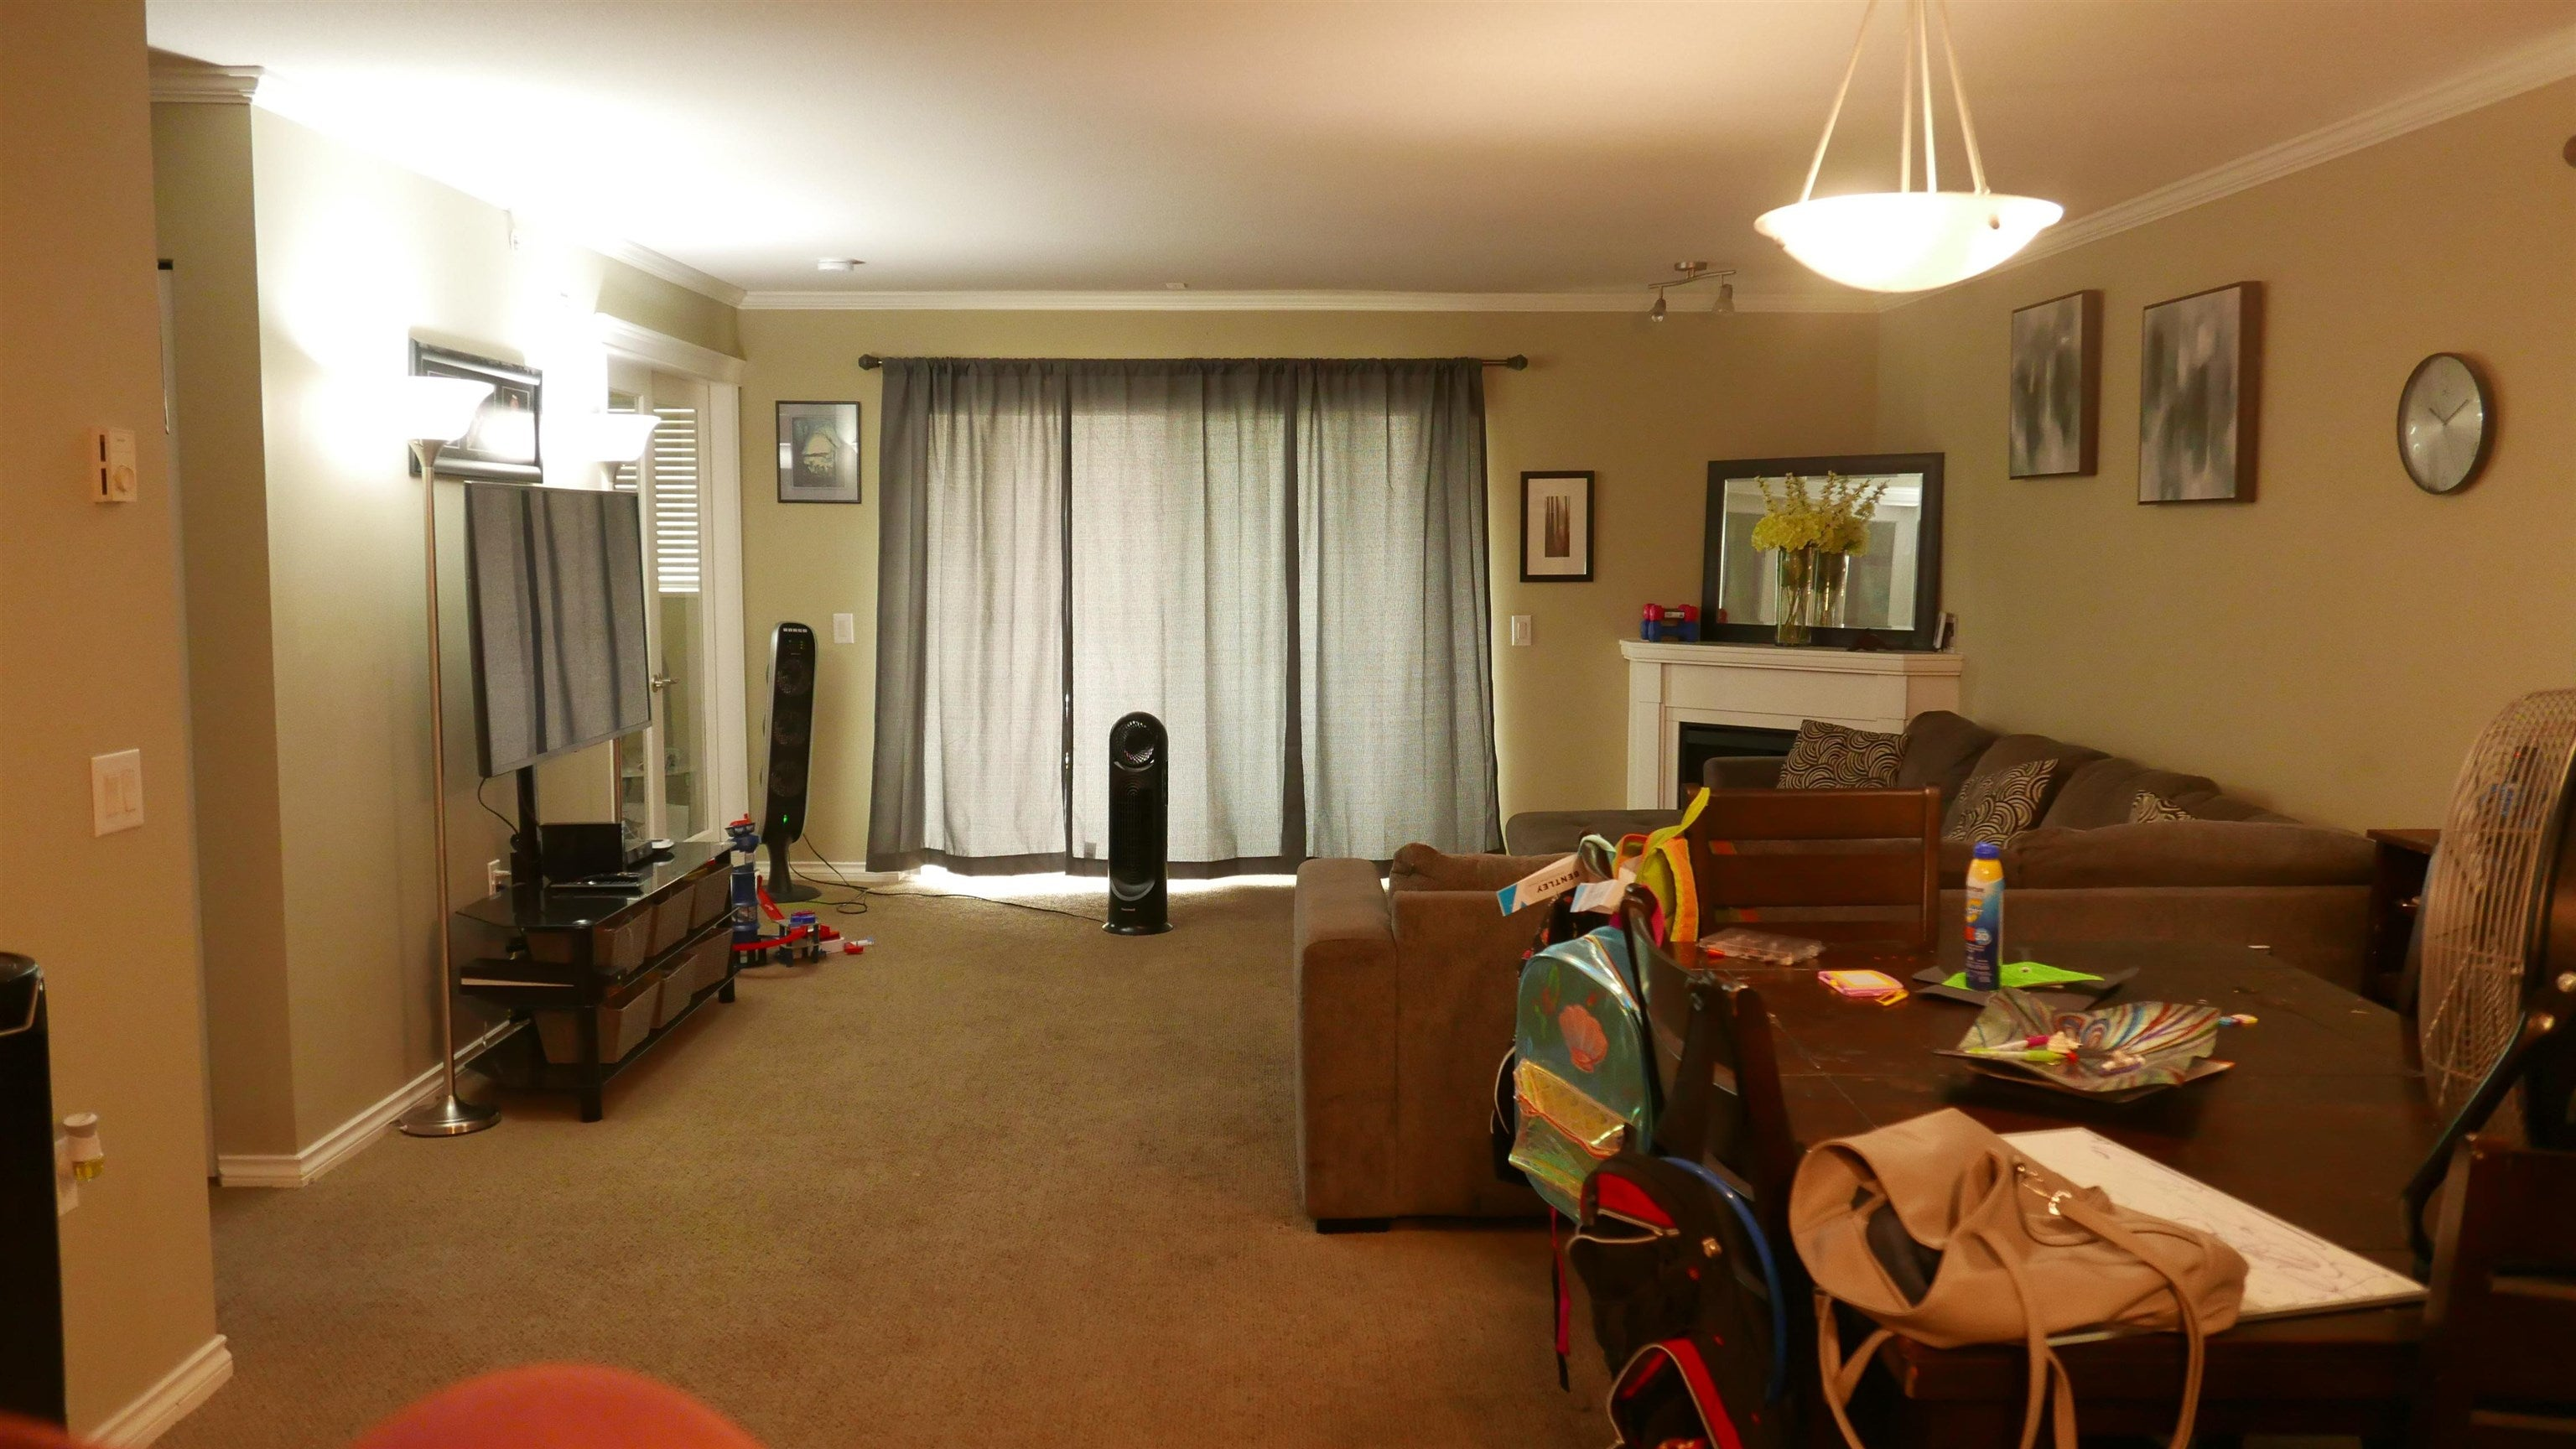 413 22255 122 AVENUE - West Central Apartment/Condo for sale, 3 Bedrooms (R2616226) - #4